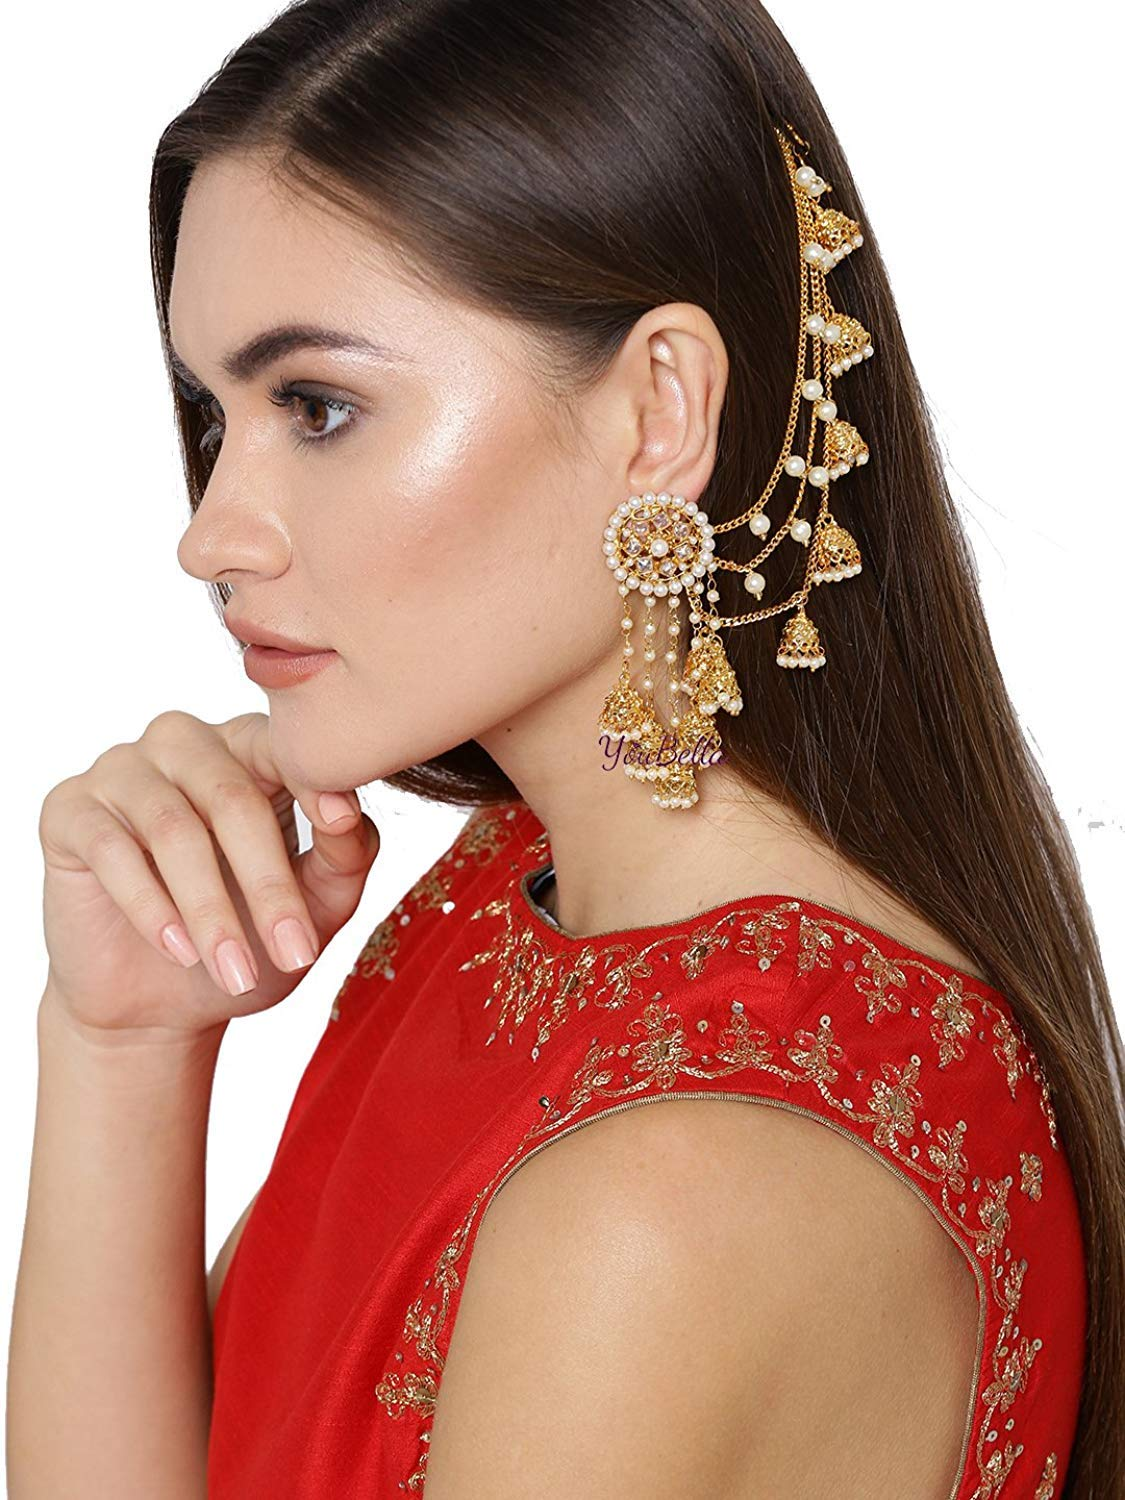 YouBella Ethnic Jewelry Bollywood Traditional Indian Earrings for Women and Girls